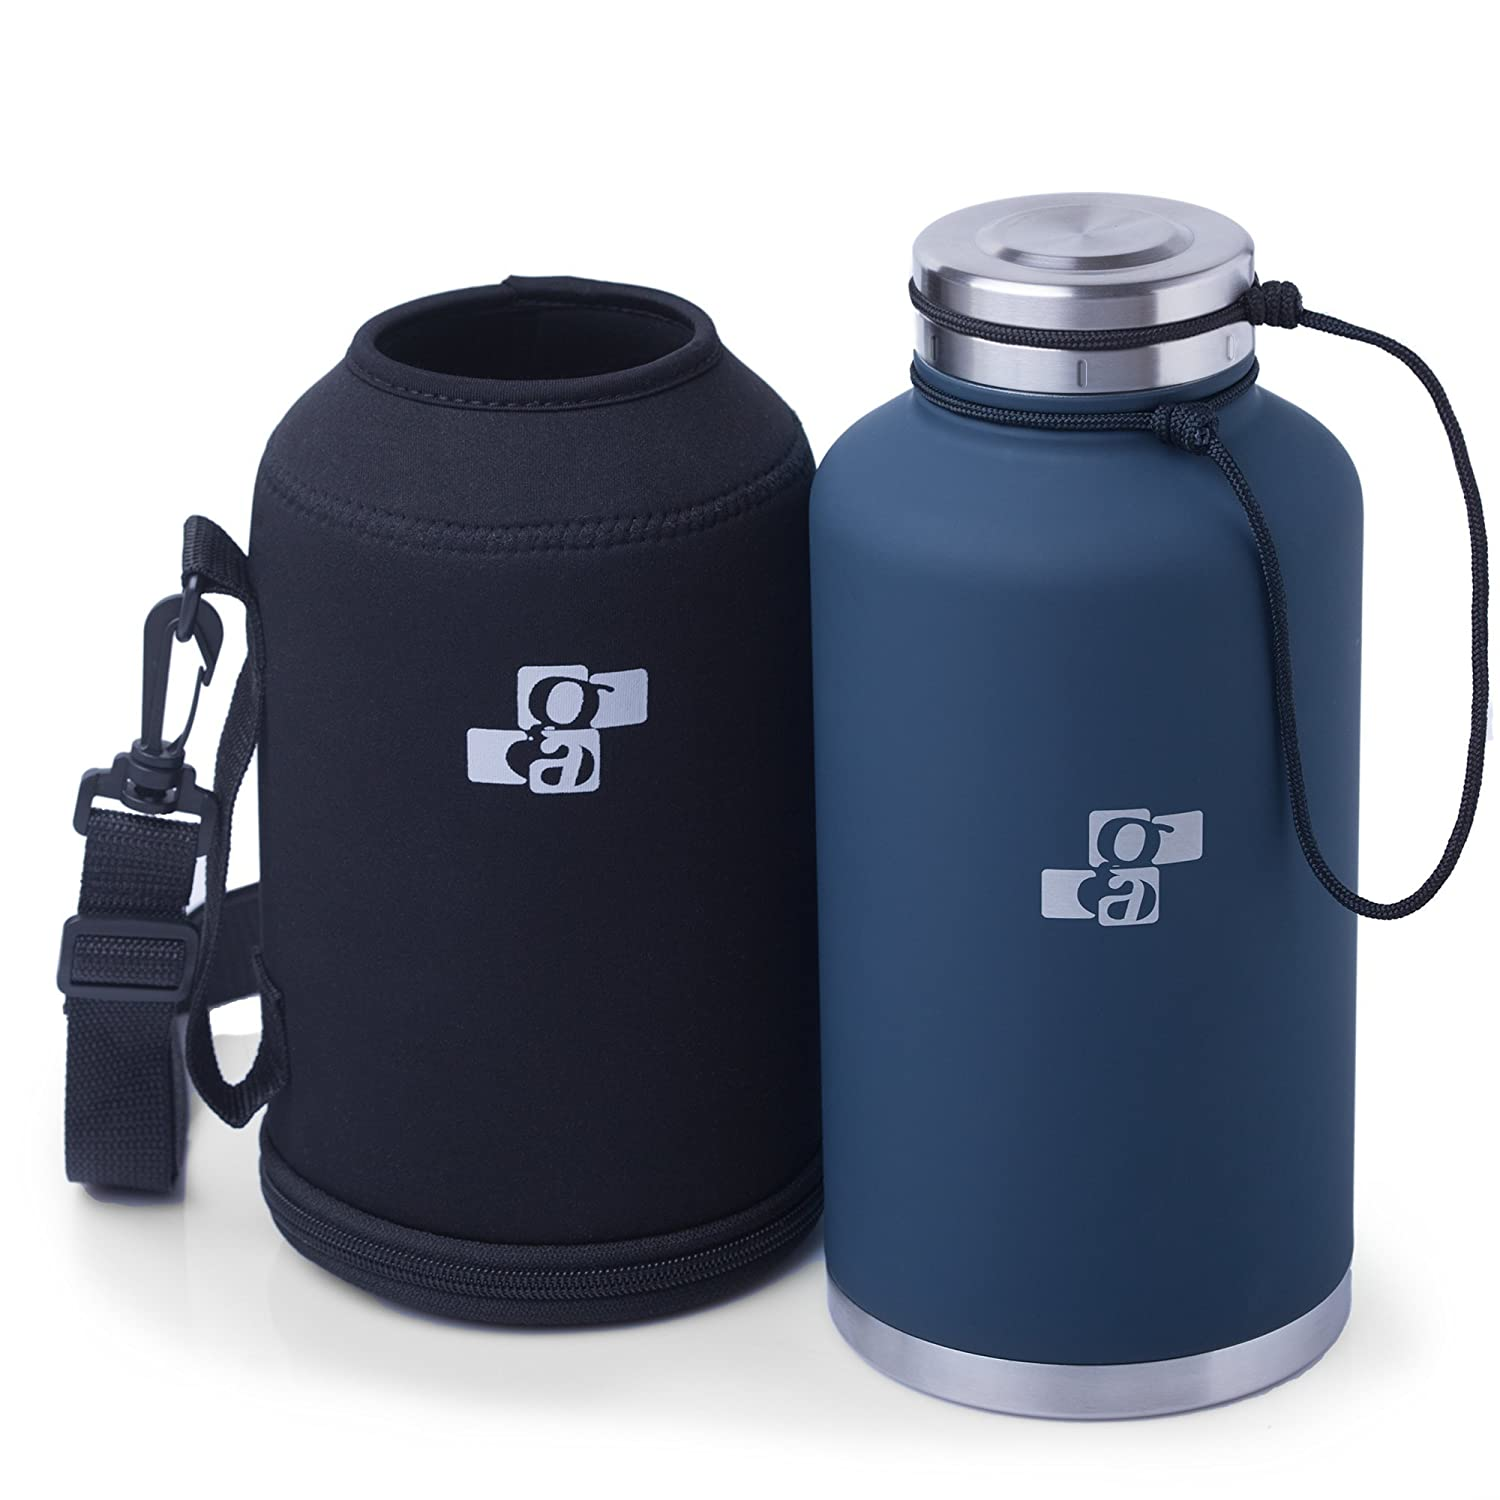 [Upgraded] Beer Growler and Water Bottle 64 oz | Insulated Stainless Steel Vacuum Growler and Water Bottle Dark Blue for HOT and COLD Beverages | Black Neoprene Growler Carrier Included Grocery Art UBG-001